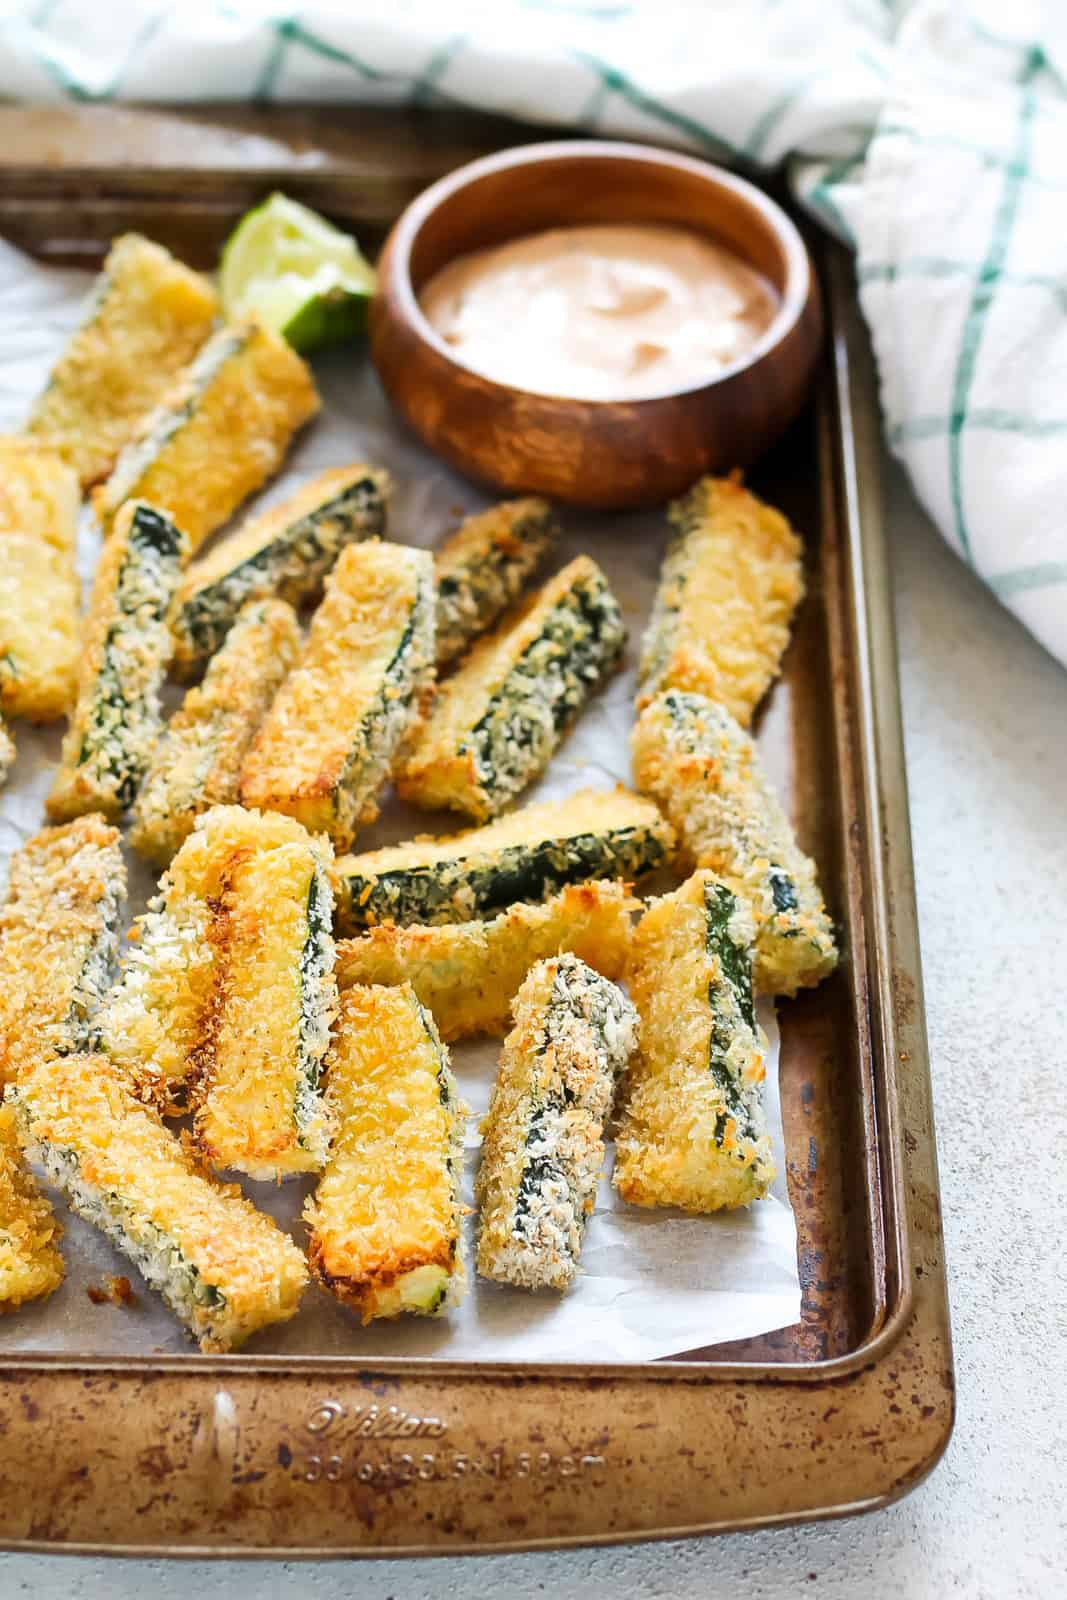 a tray of baked zucchini fries with a small bowl of dip and some lime wedges on the side